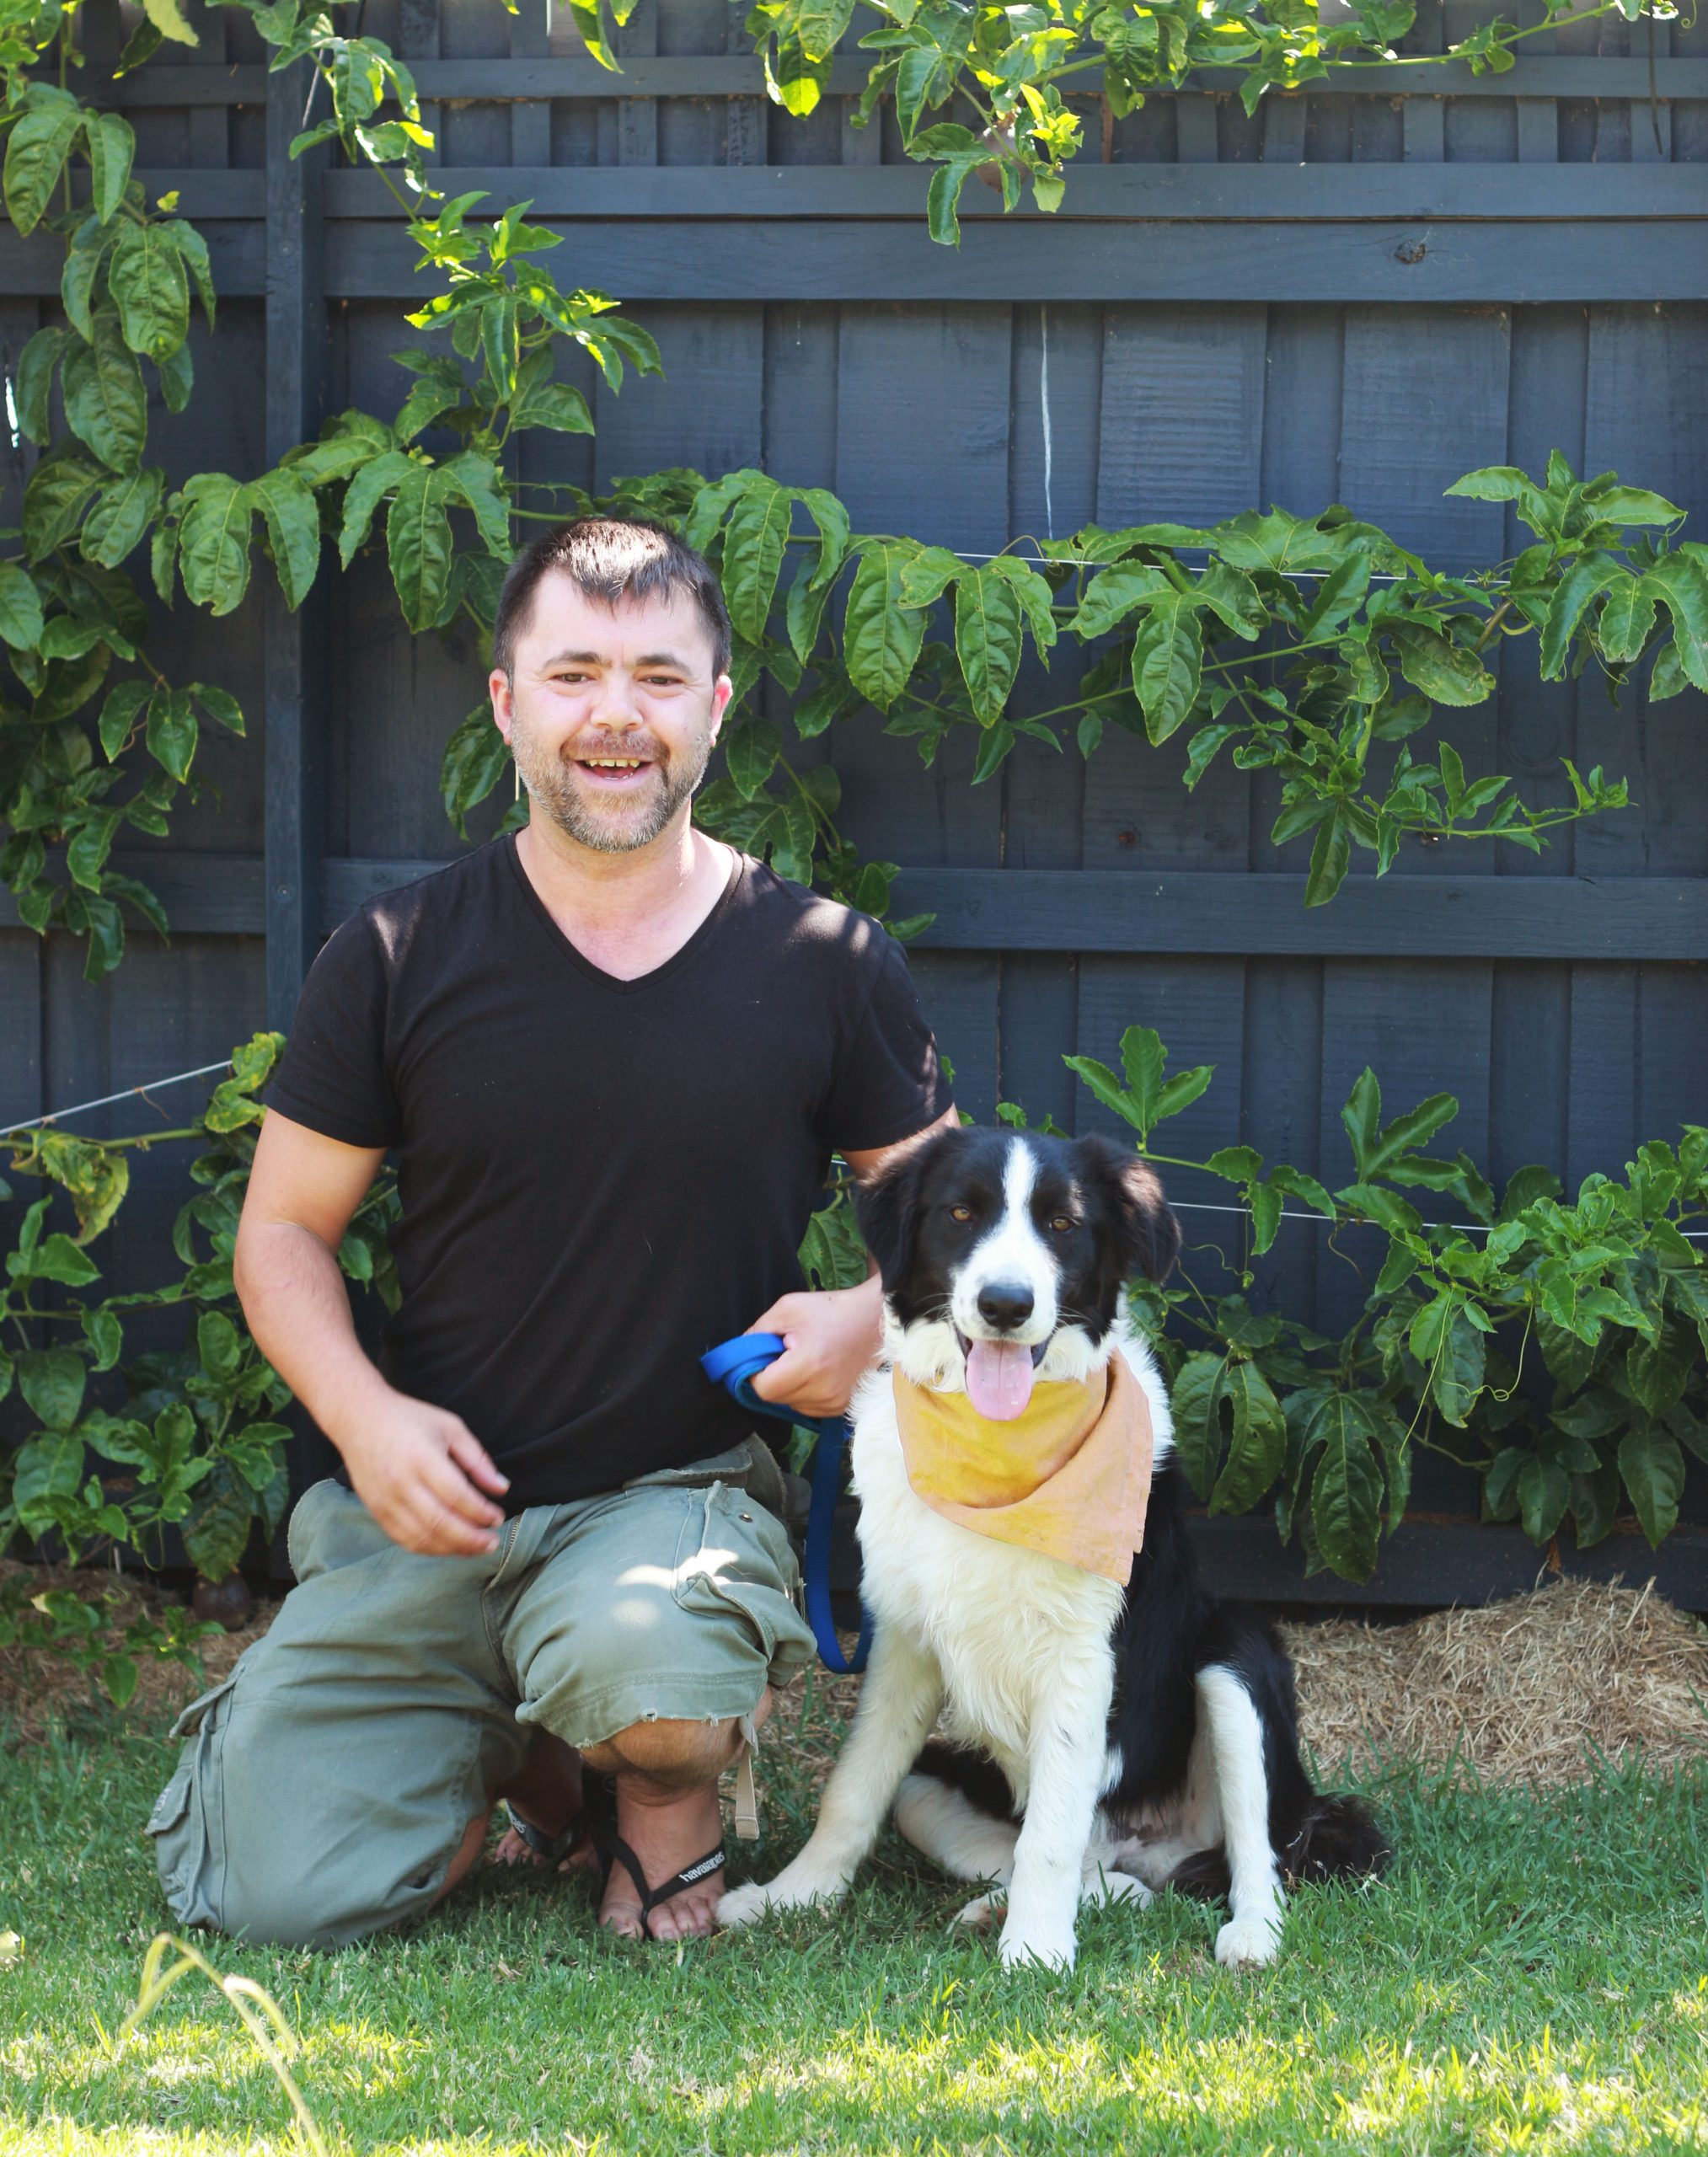 Adam Duffy - The Pet Nanny - Dog Walking & Pet Sitting in Melbourne